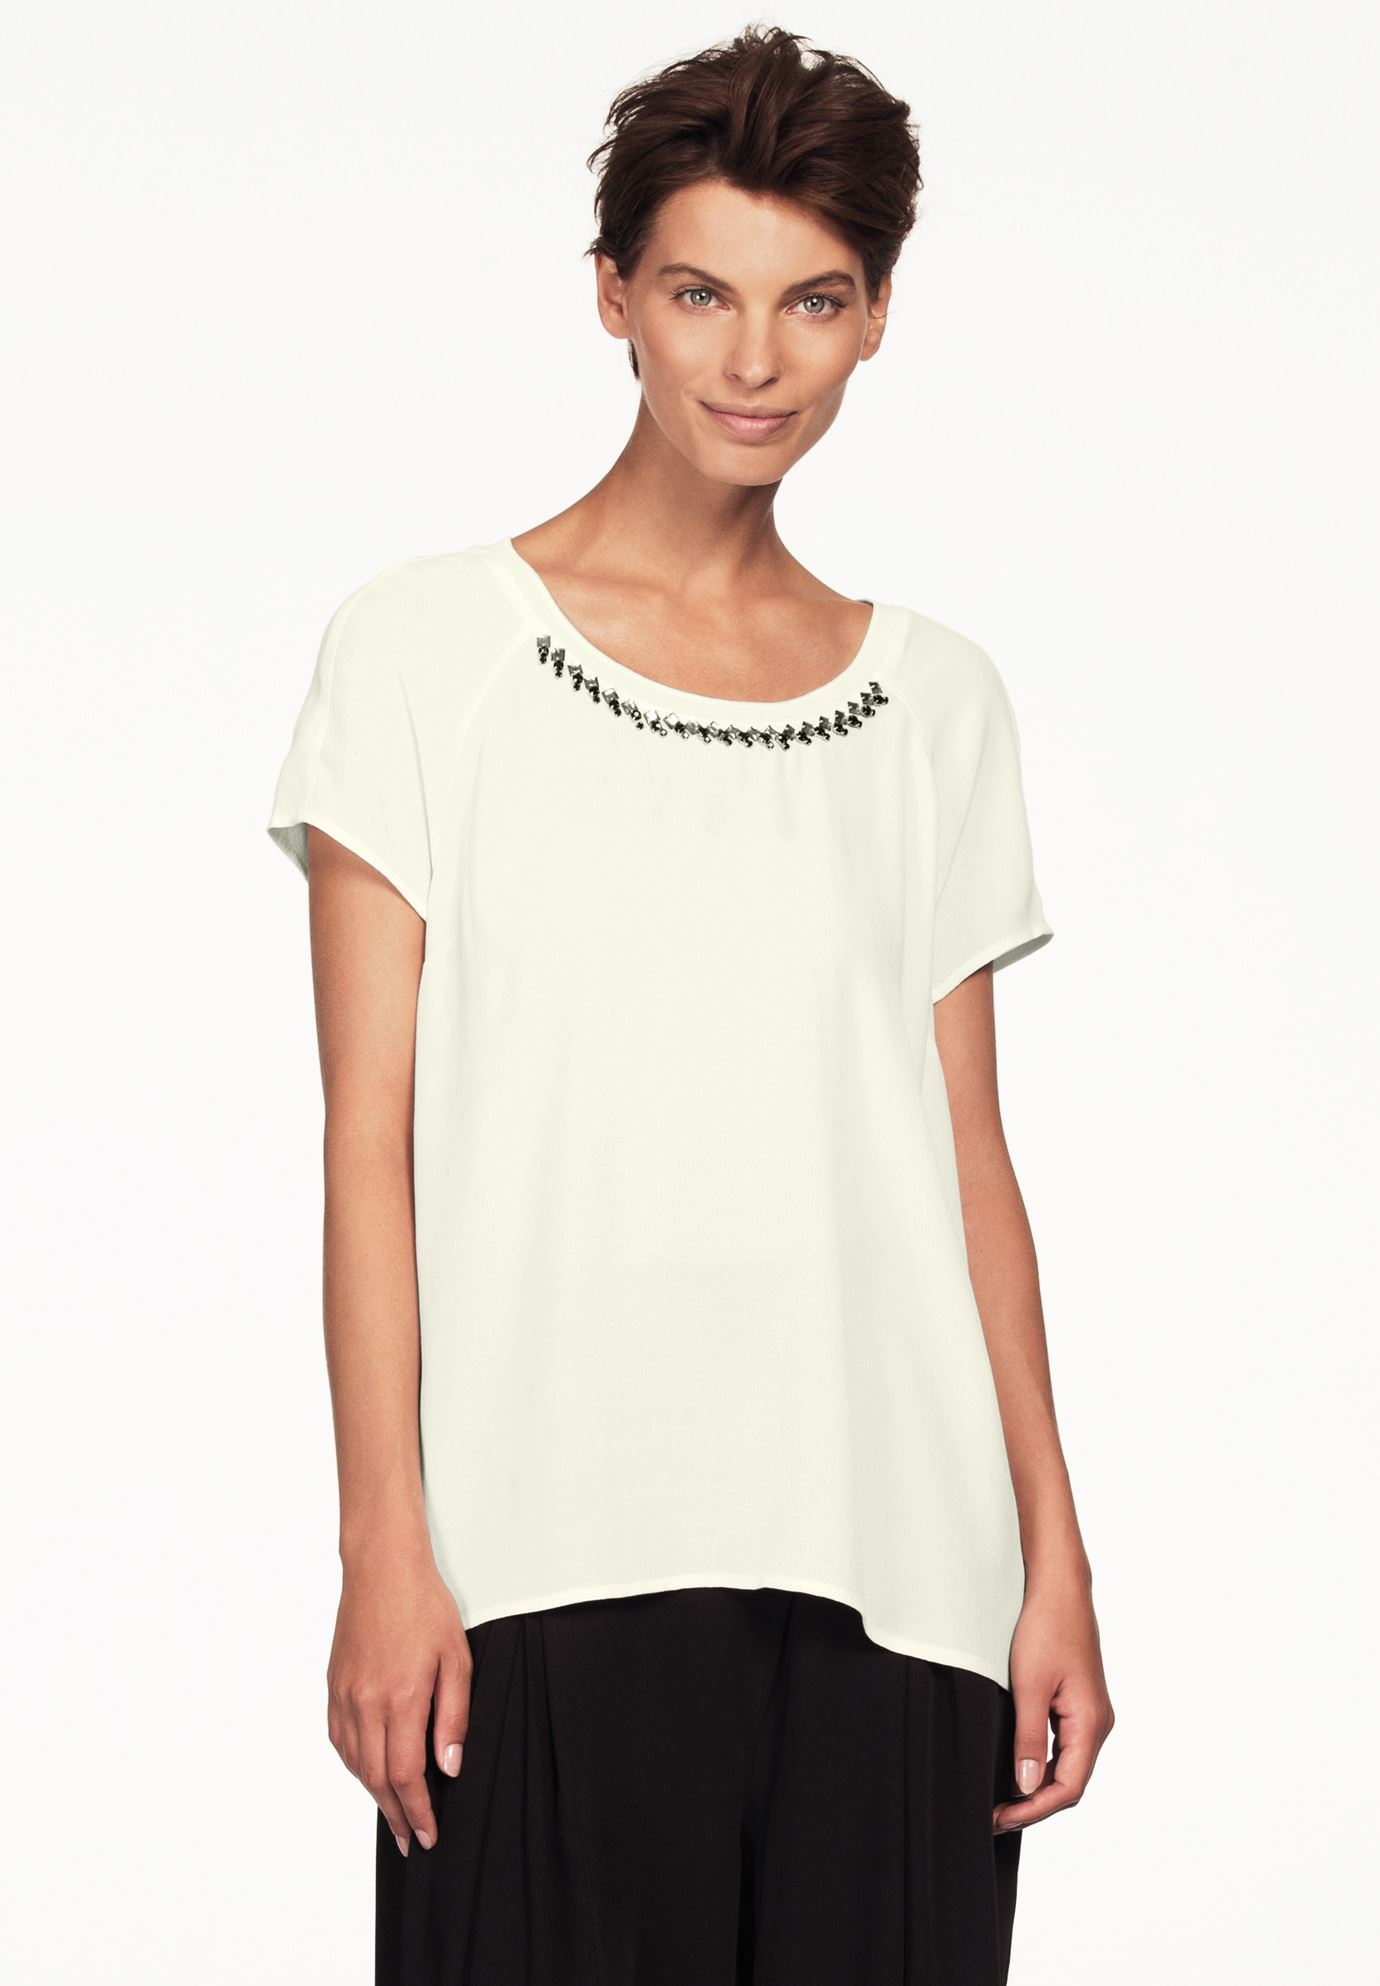 Jewel Embellished A-line Top by Ellos®, IVORY, hi-res